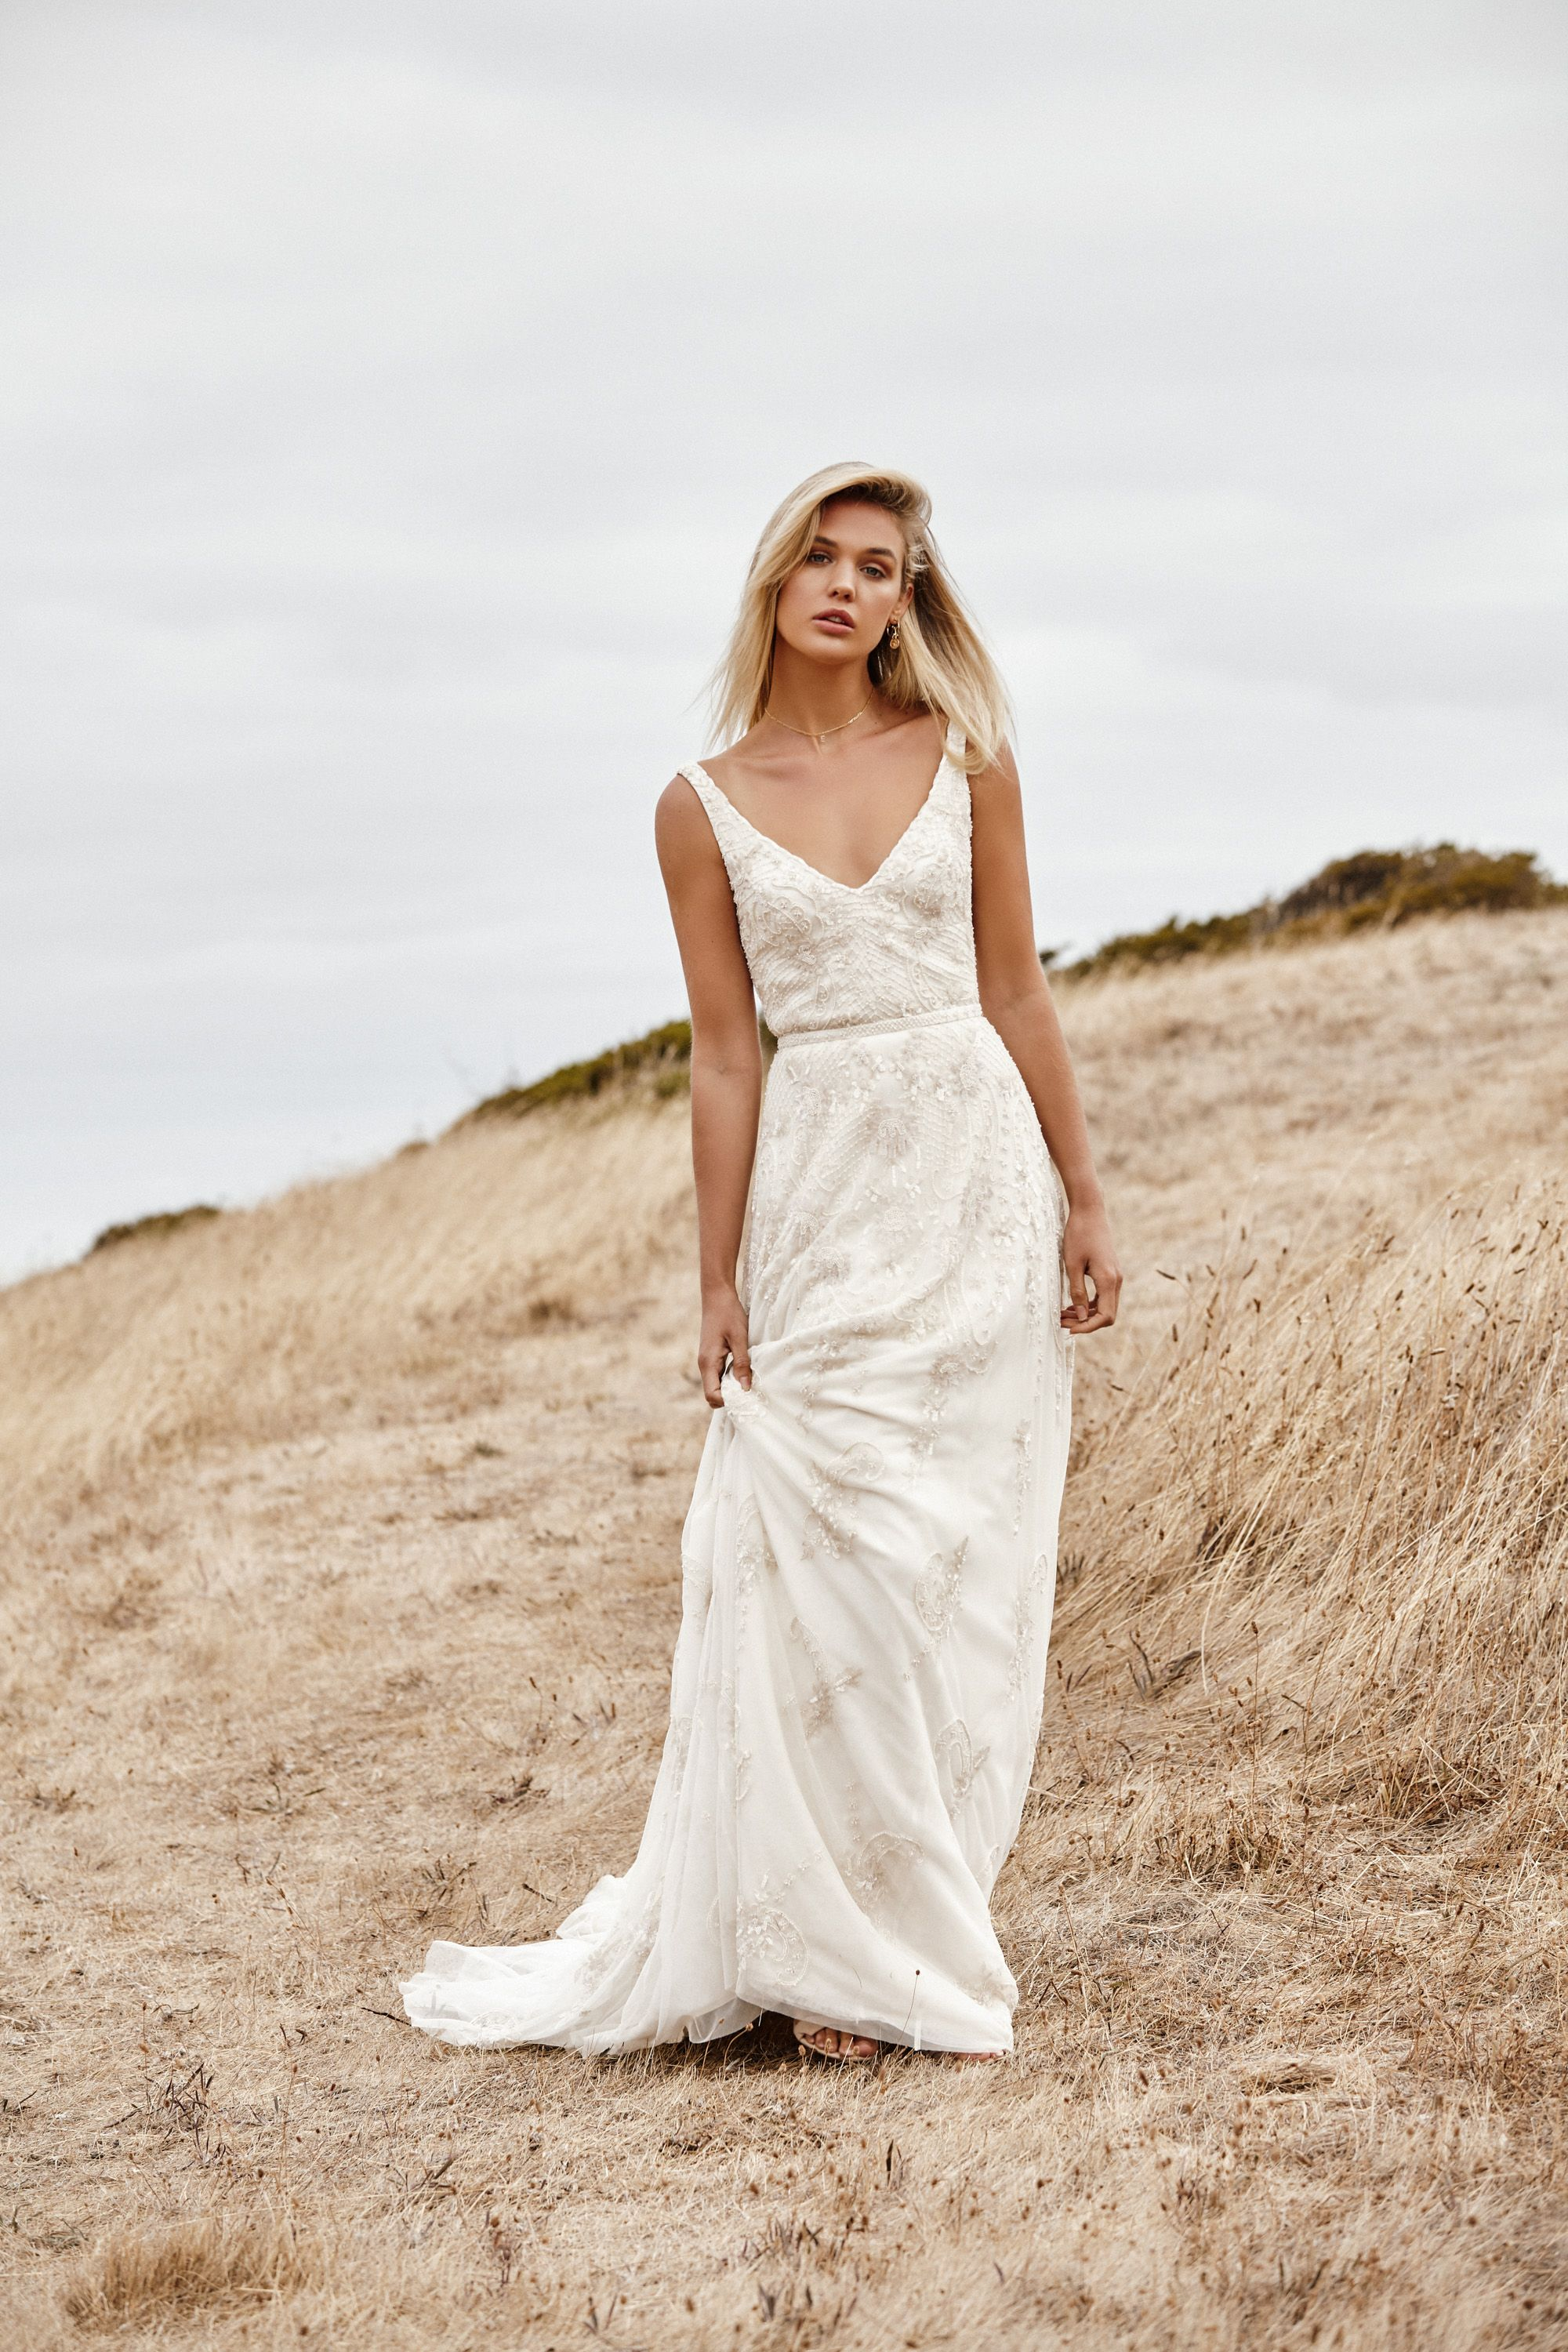 Beatrice in 2020 Beaded wedding gowns, Wedding dresses